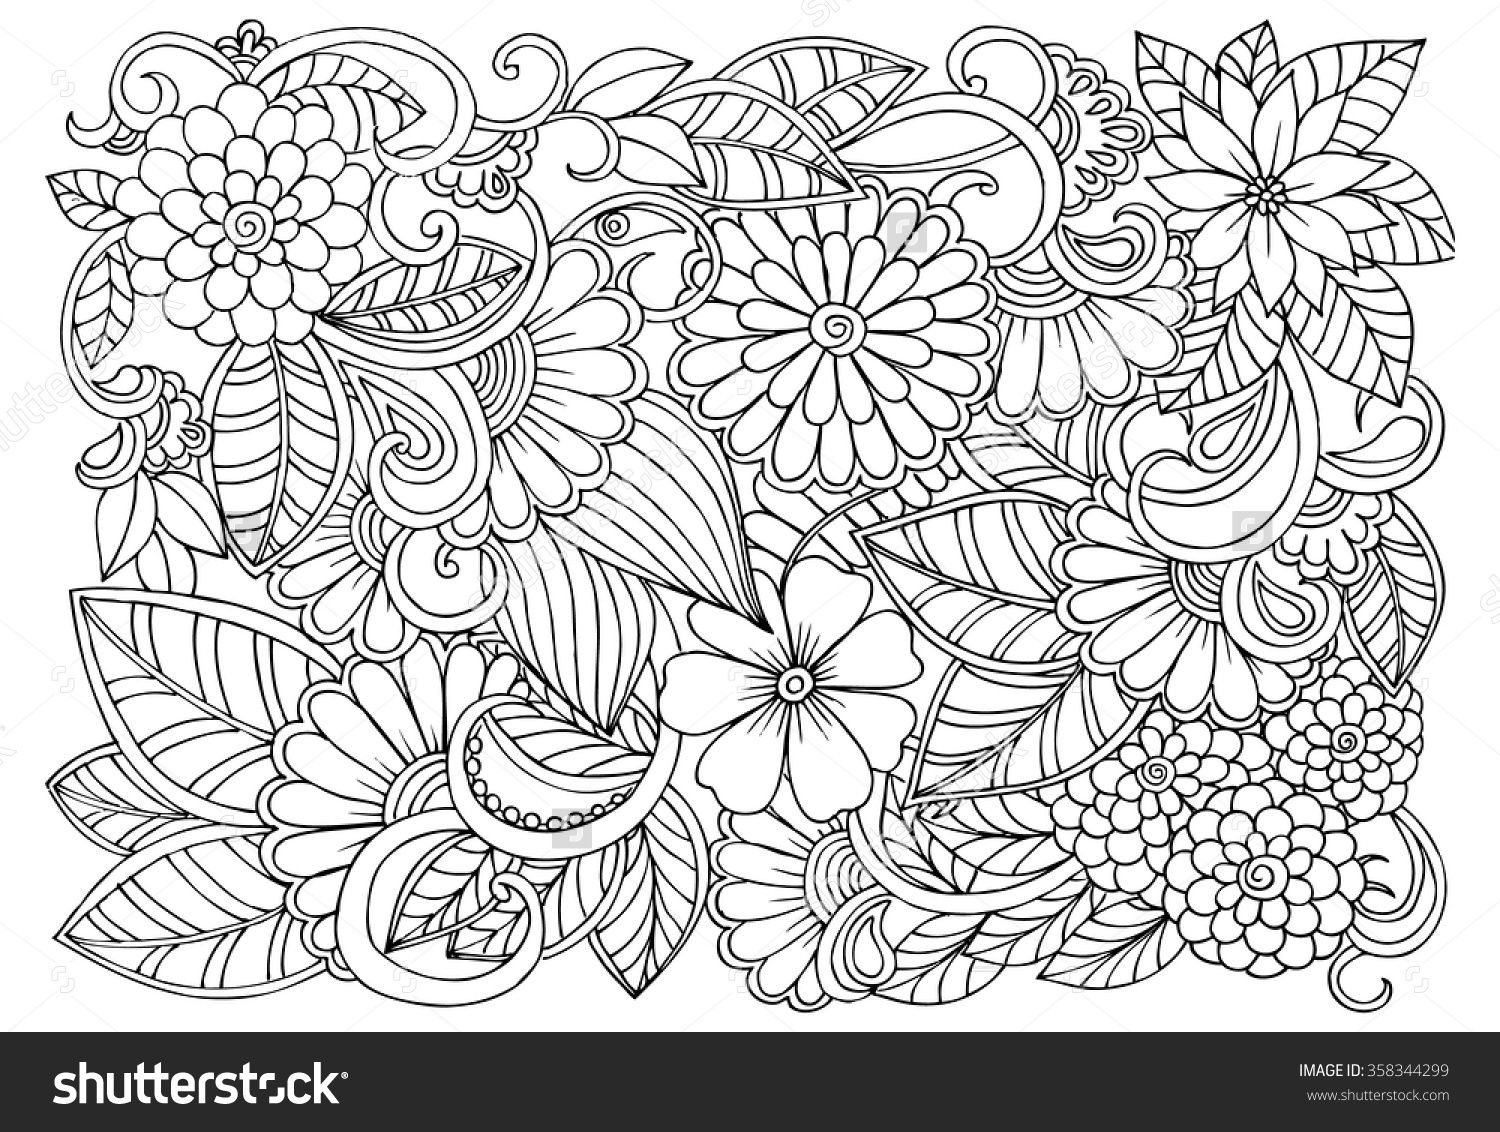 Coloring Pages Of Flower Designs With Flower Designs Coloring Pages ...